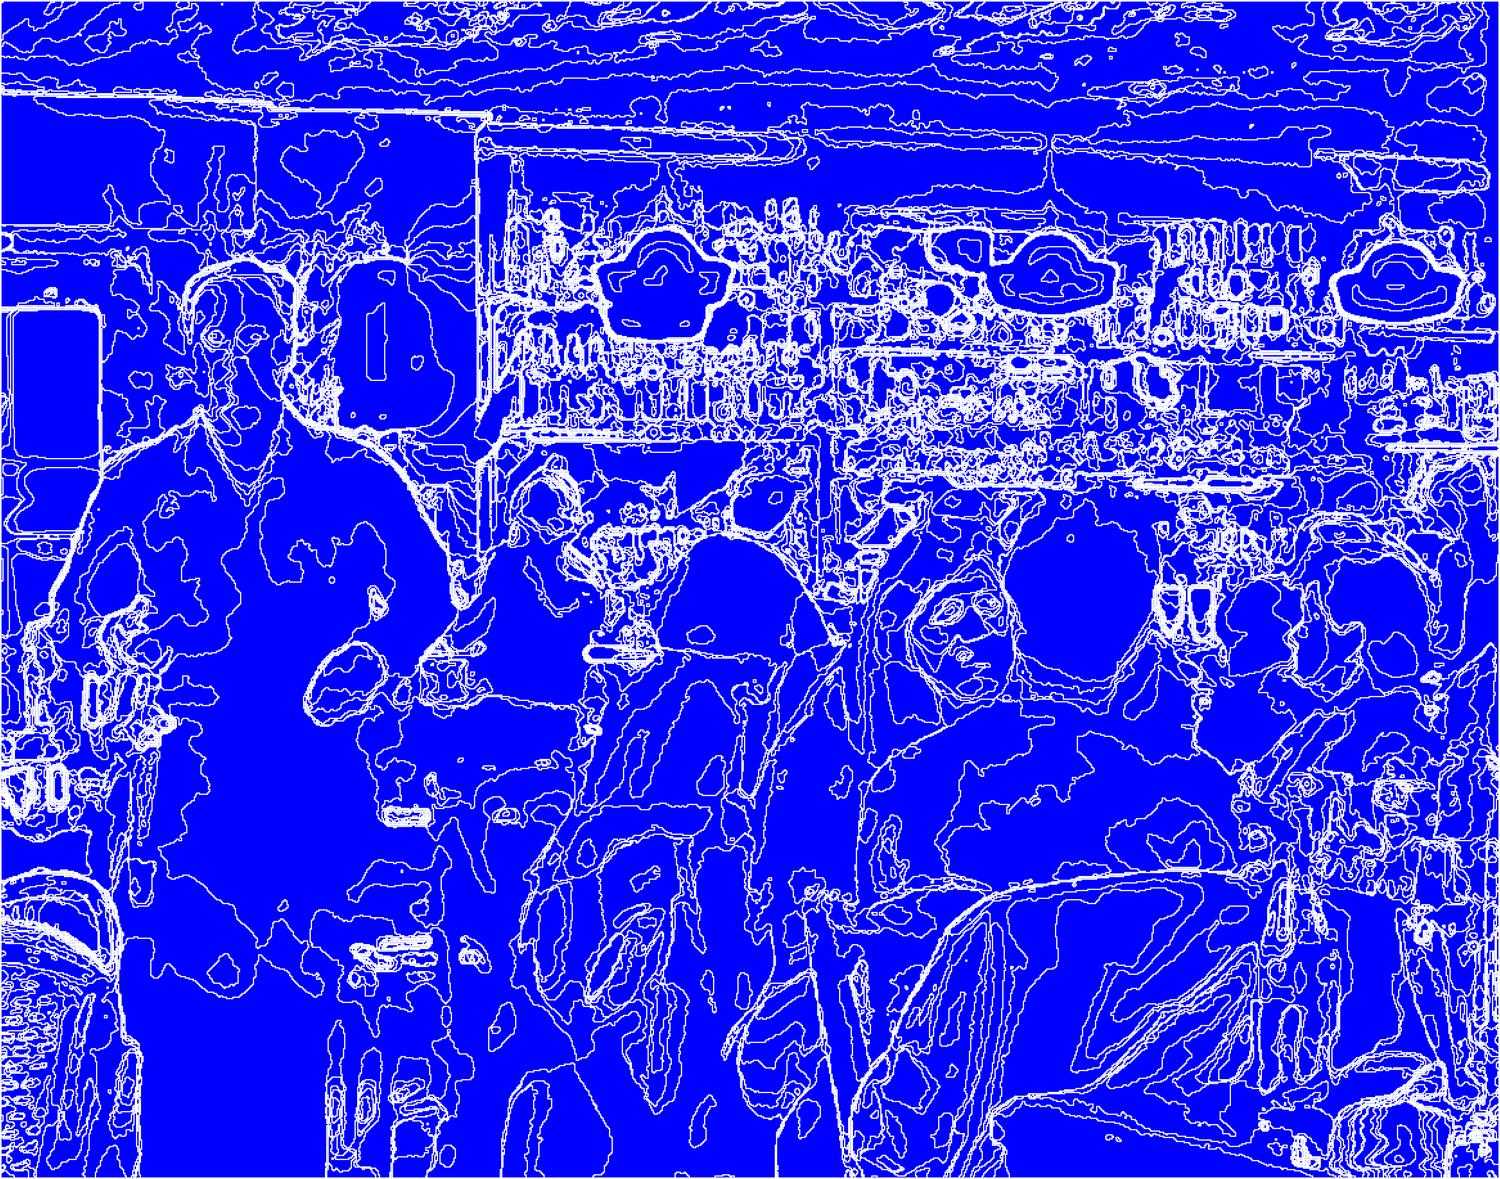 - Blue bistro - Techno-Impressionist Museum - Techno-Impressionism - art - beautiful - photo photography picture - by Tony Karp